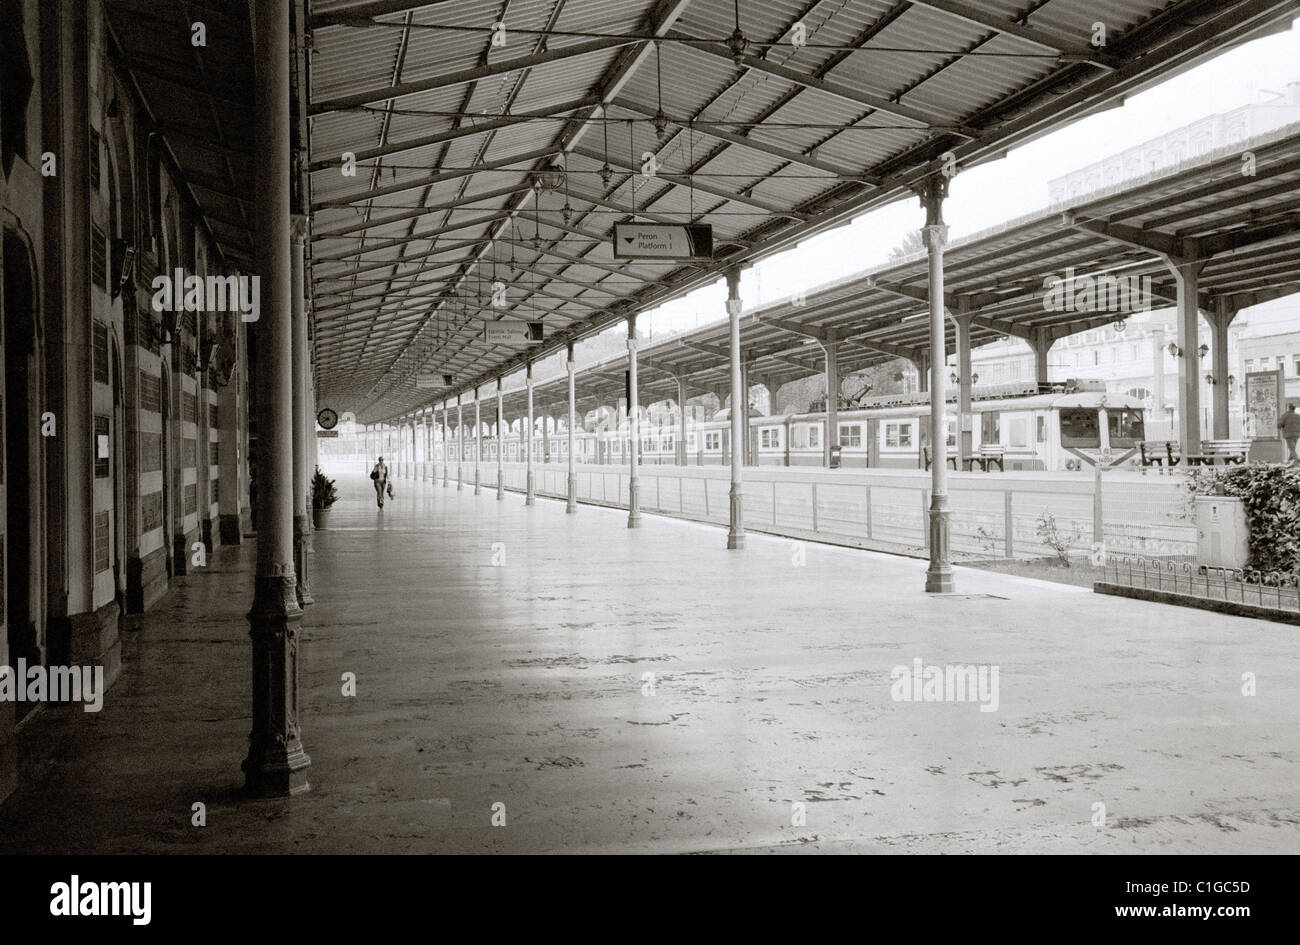 Sirkeci Train Railway Station in Eminonu Istanbul in Turkey Middle East Asia. Orient Express History Historical - Stock Image